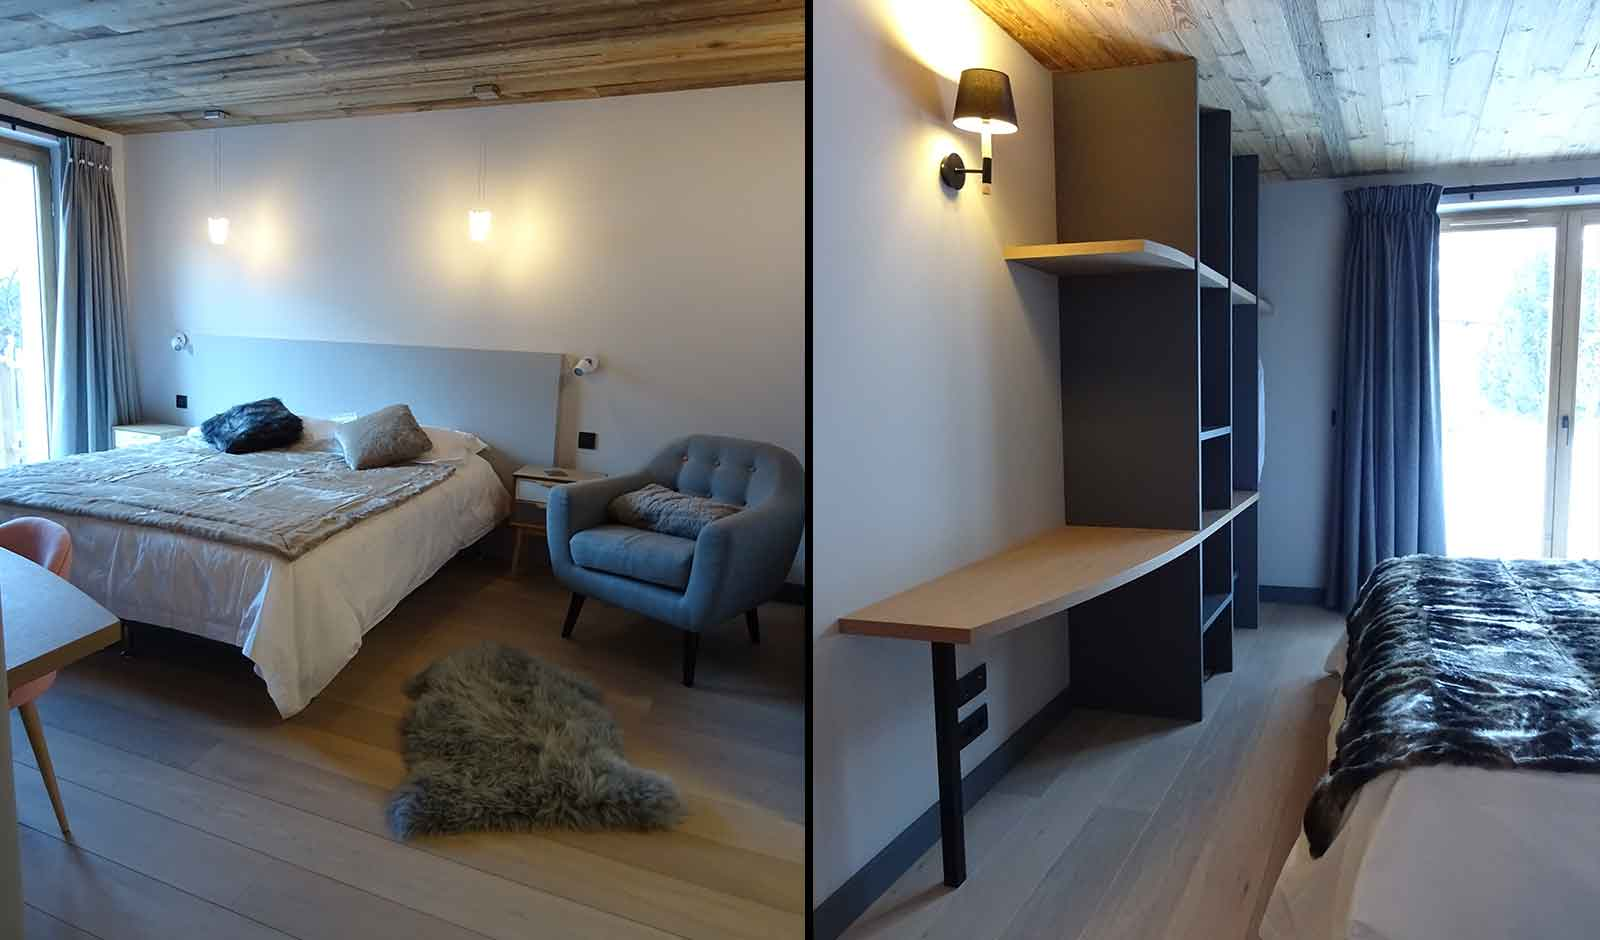 chalet-charlie-6-atelier-crea-and-co-architecte-design-project-manager-meribel-savoie